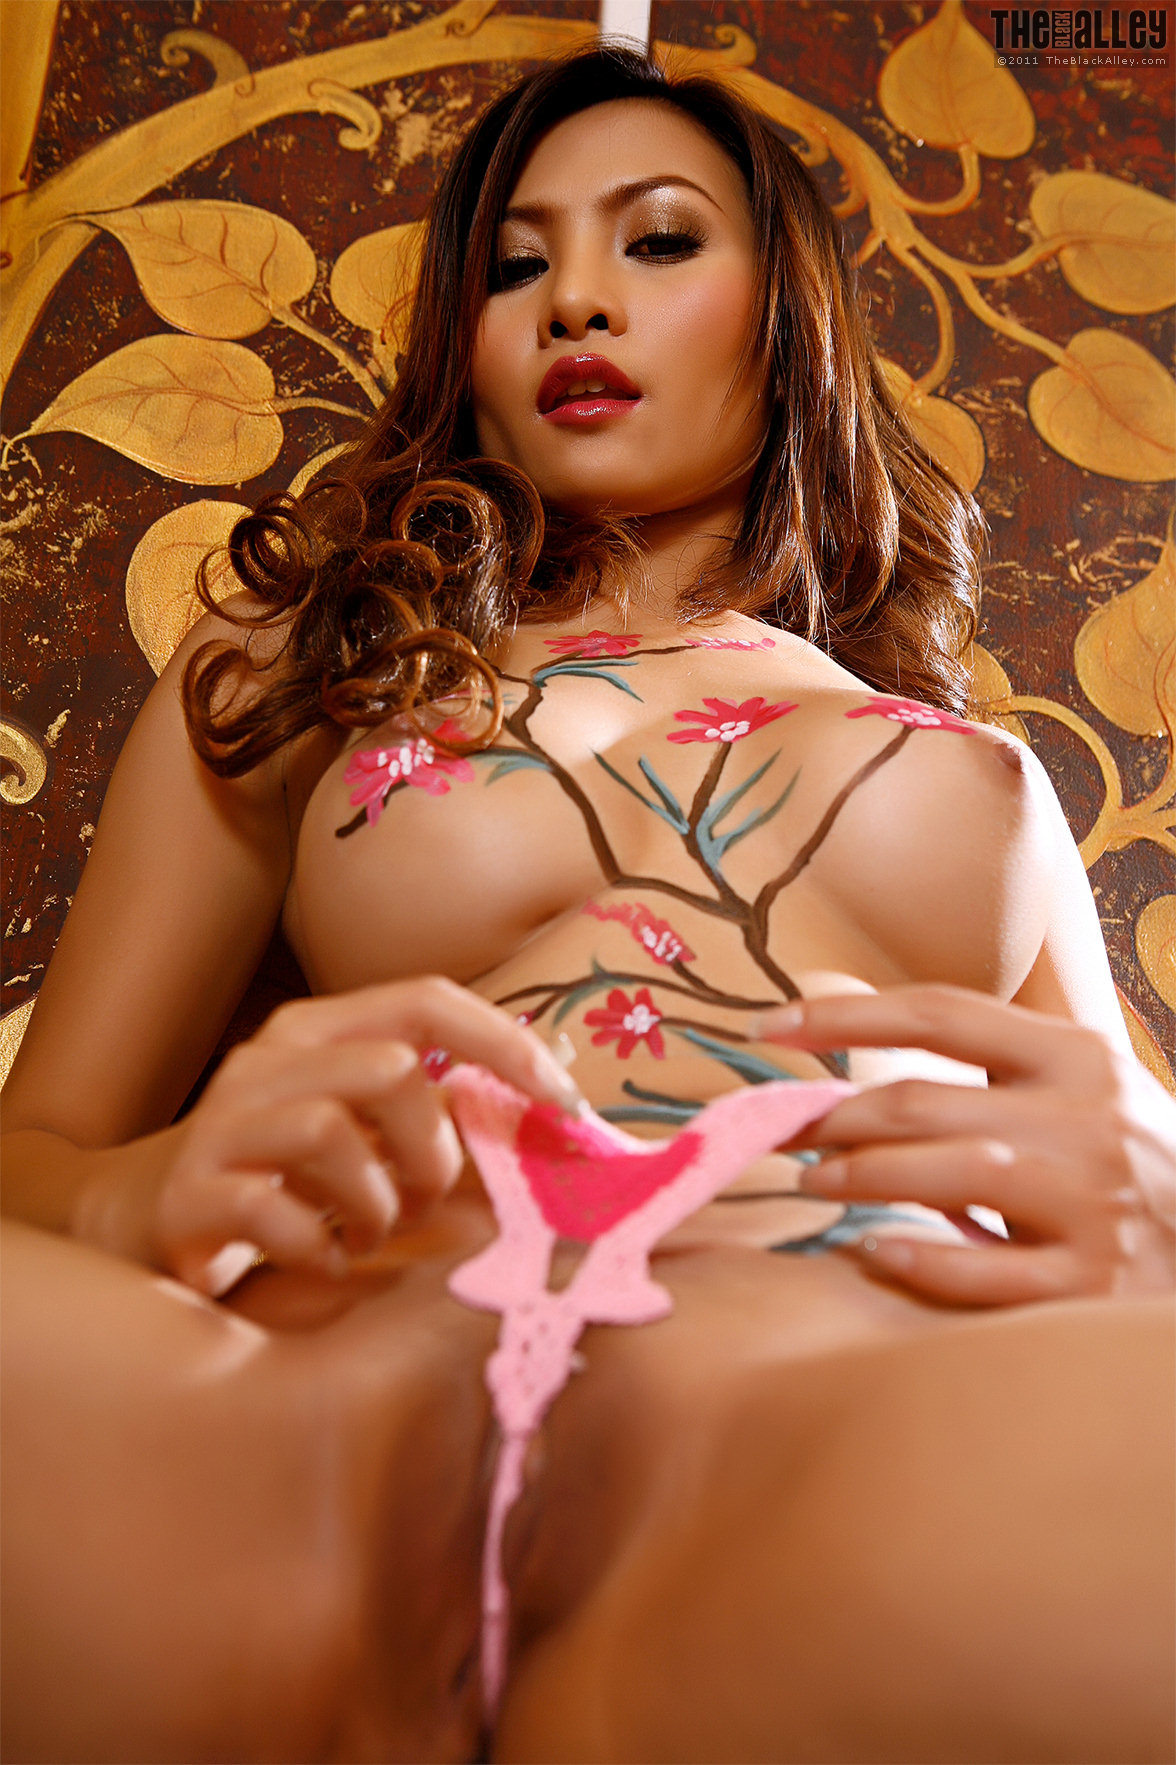 Beautiful asian hot naked woman bodypainting pics